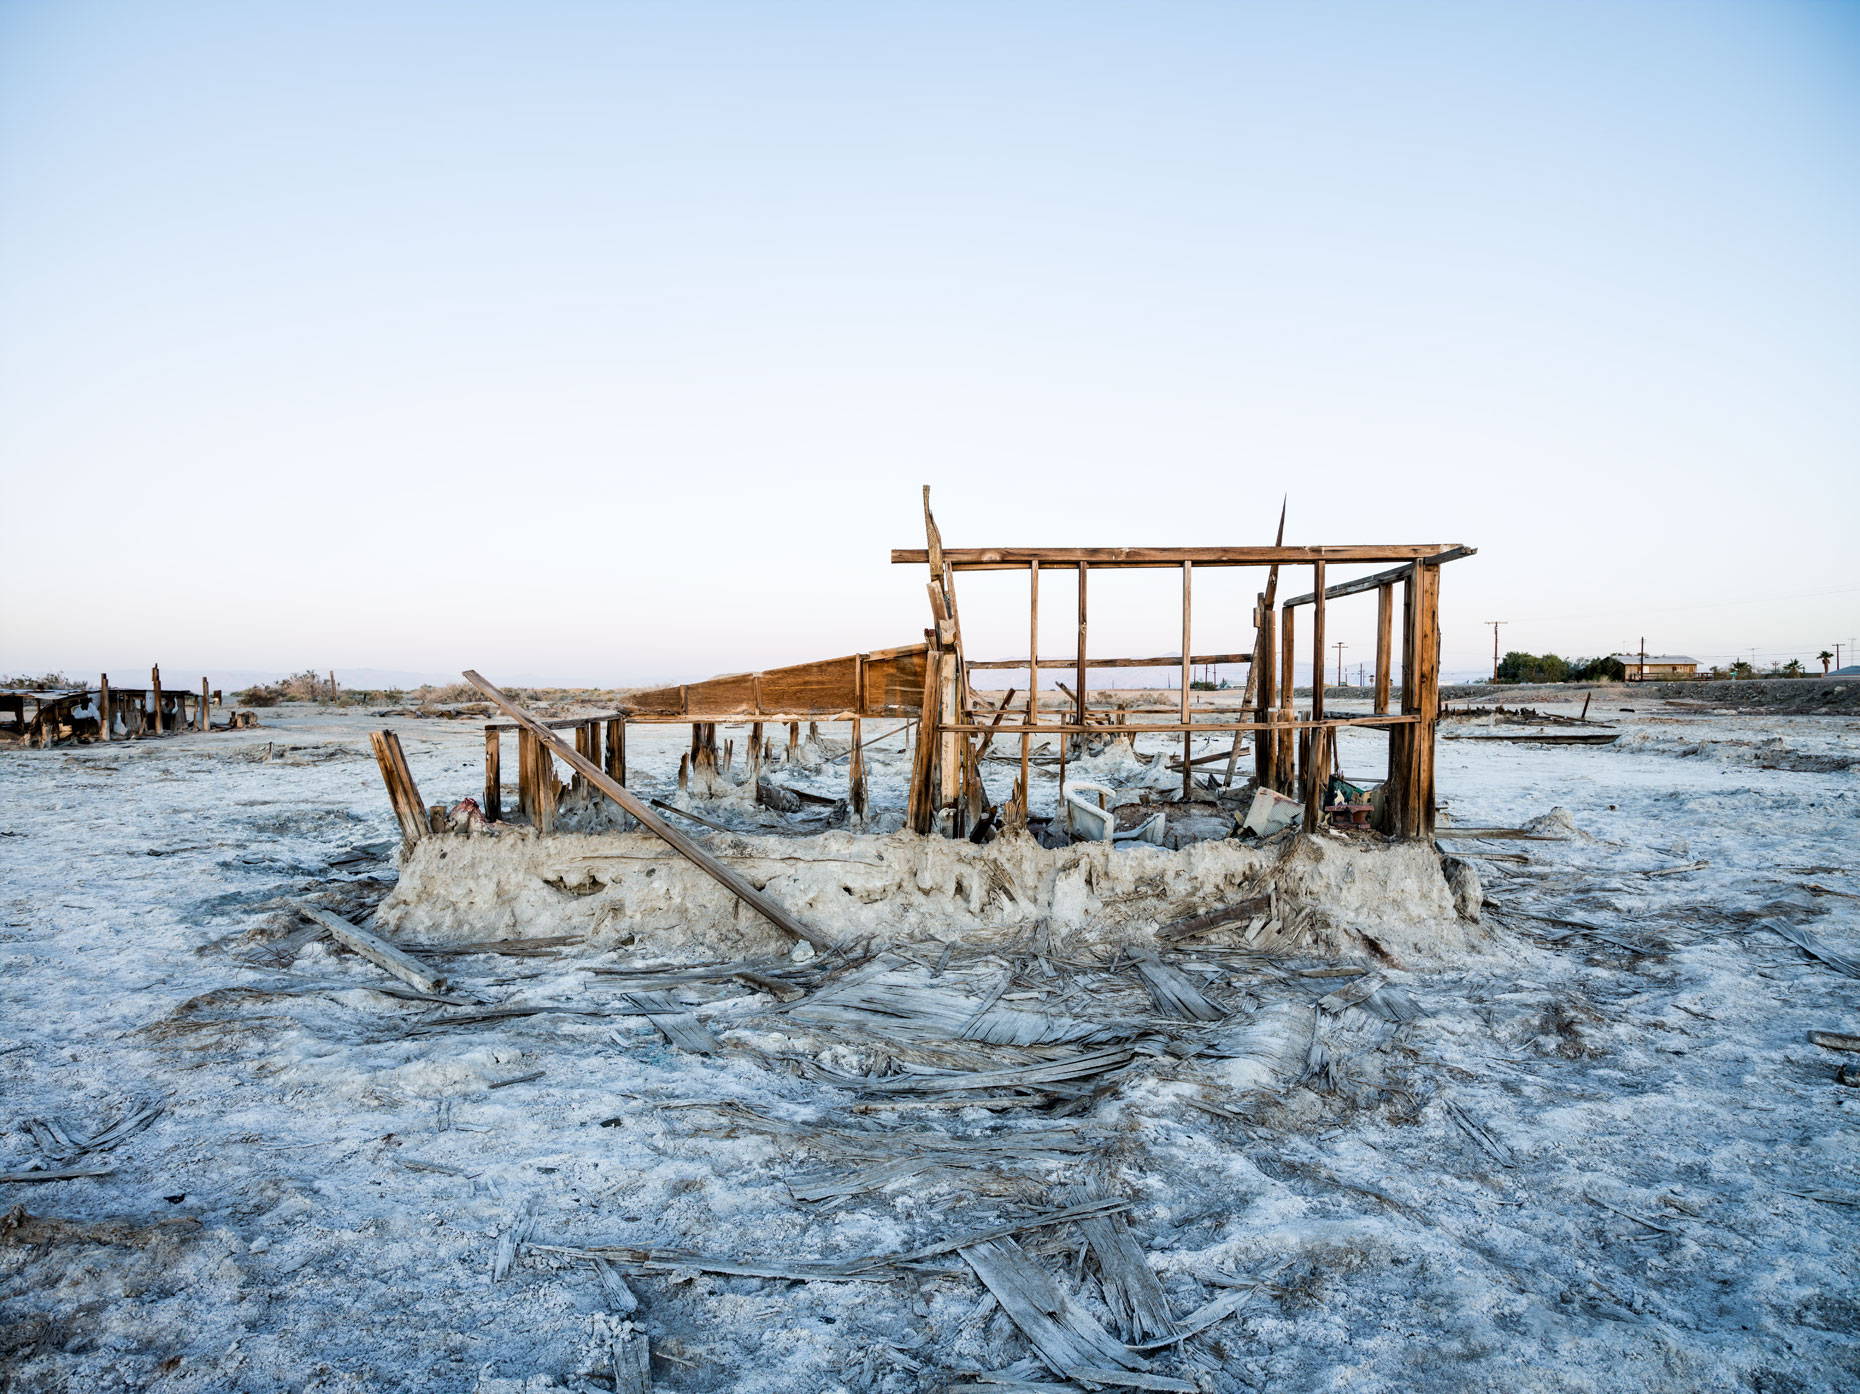 Bombay Beach decaying house on the deserted shoreline